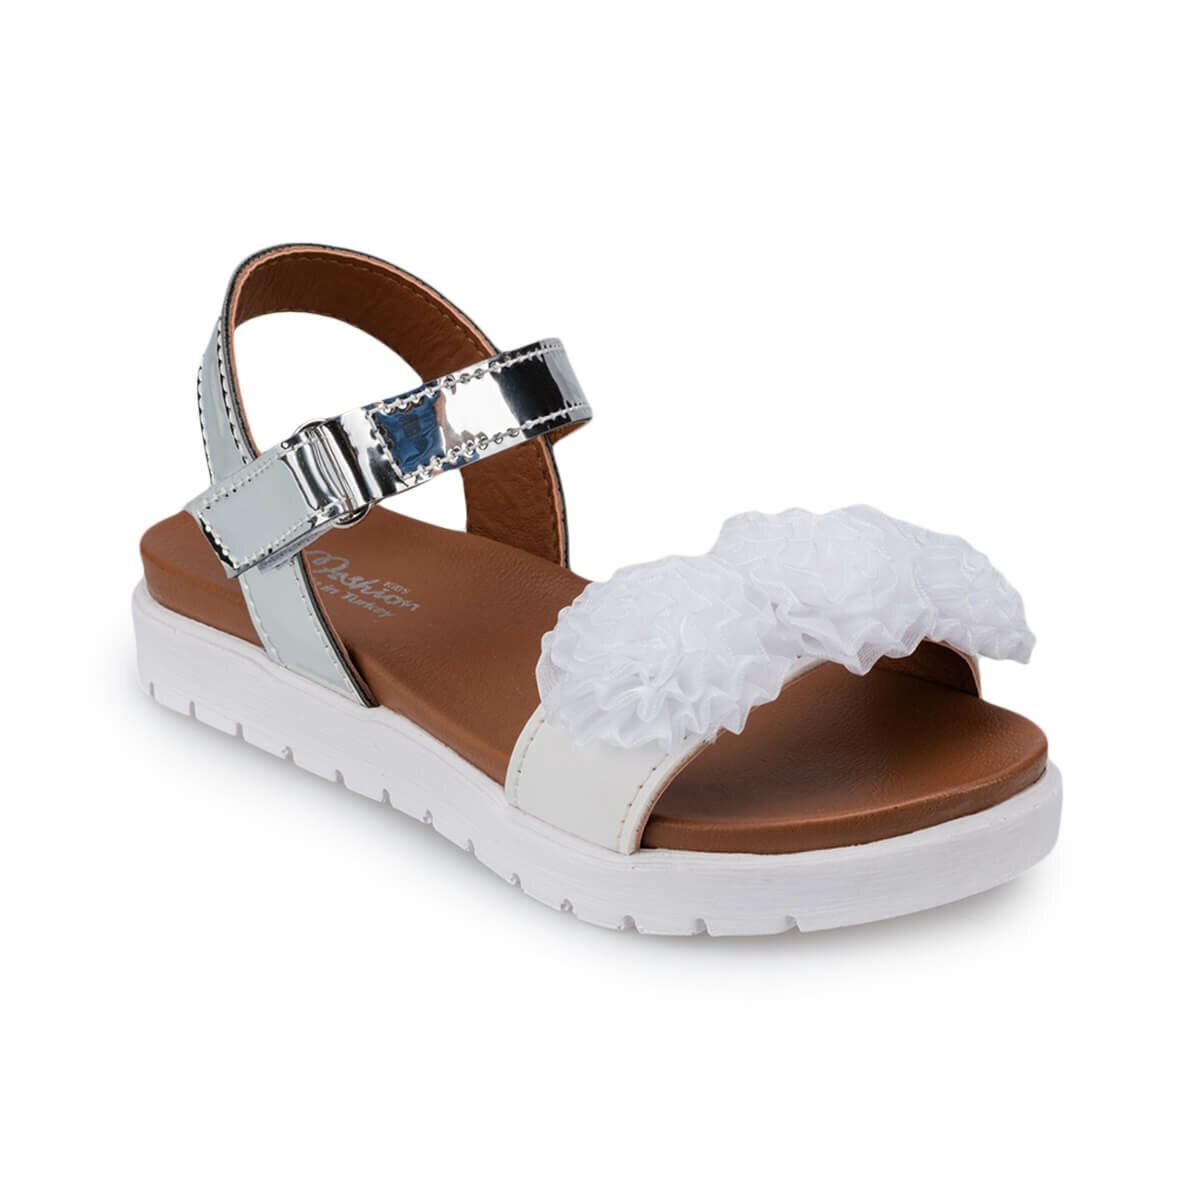 FLO 91.511186.P White Female Child Sandals Polaris